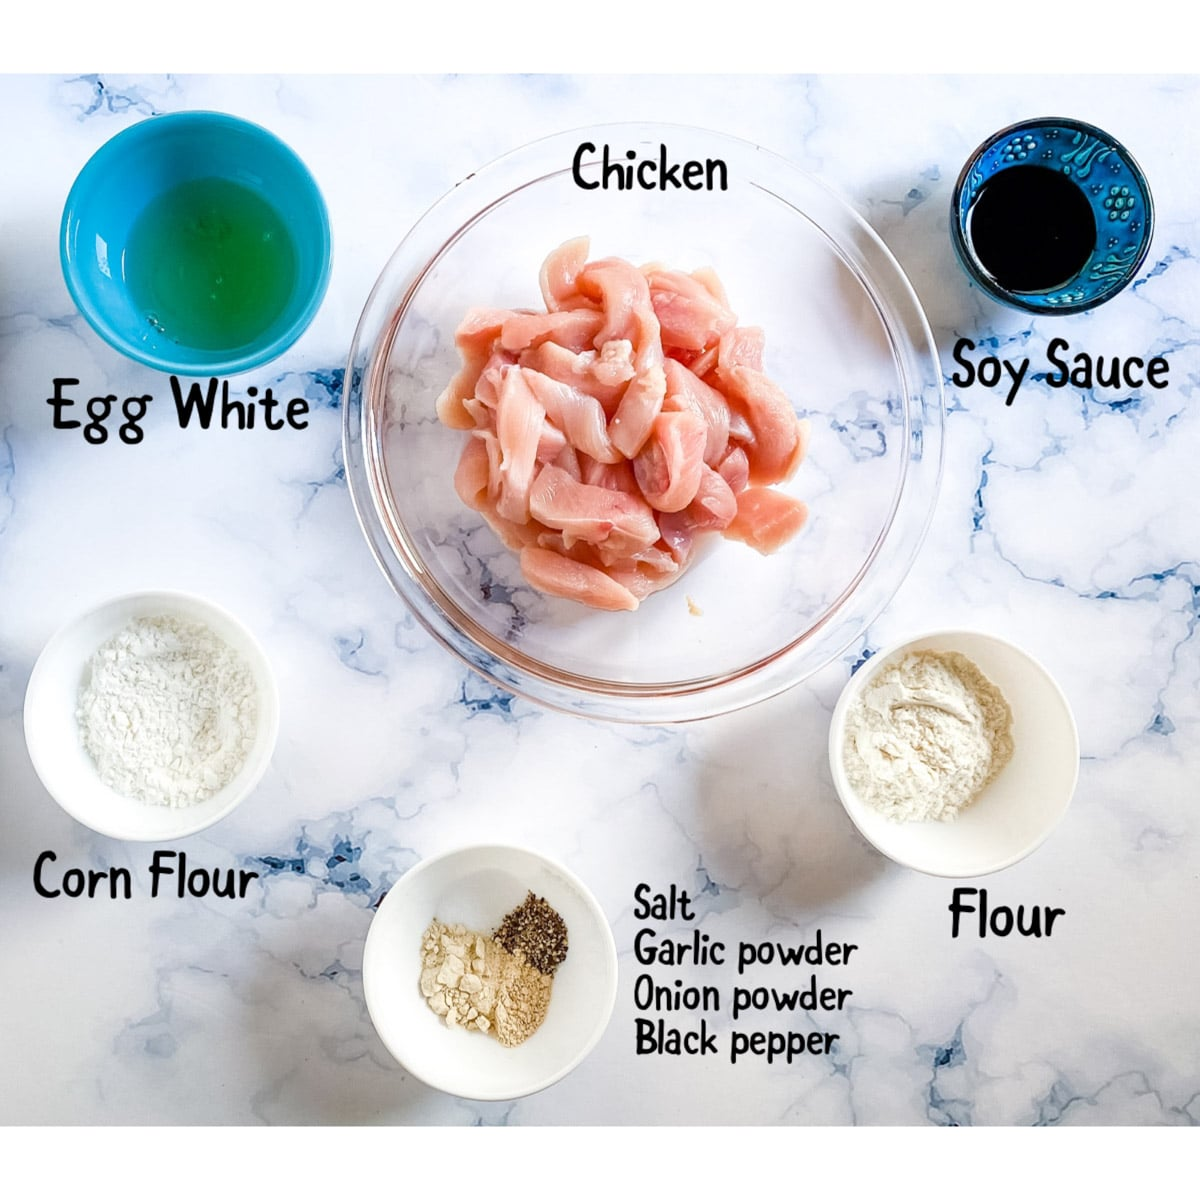 ingredients needed for the fried chicken